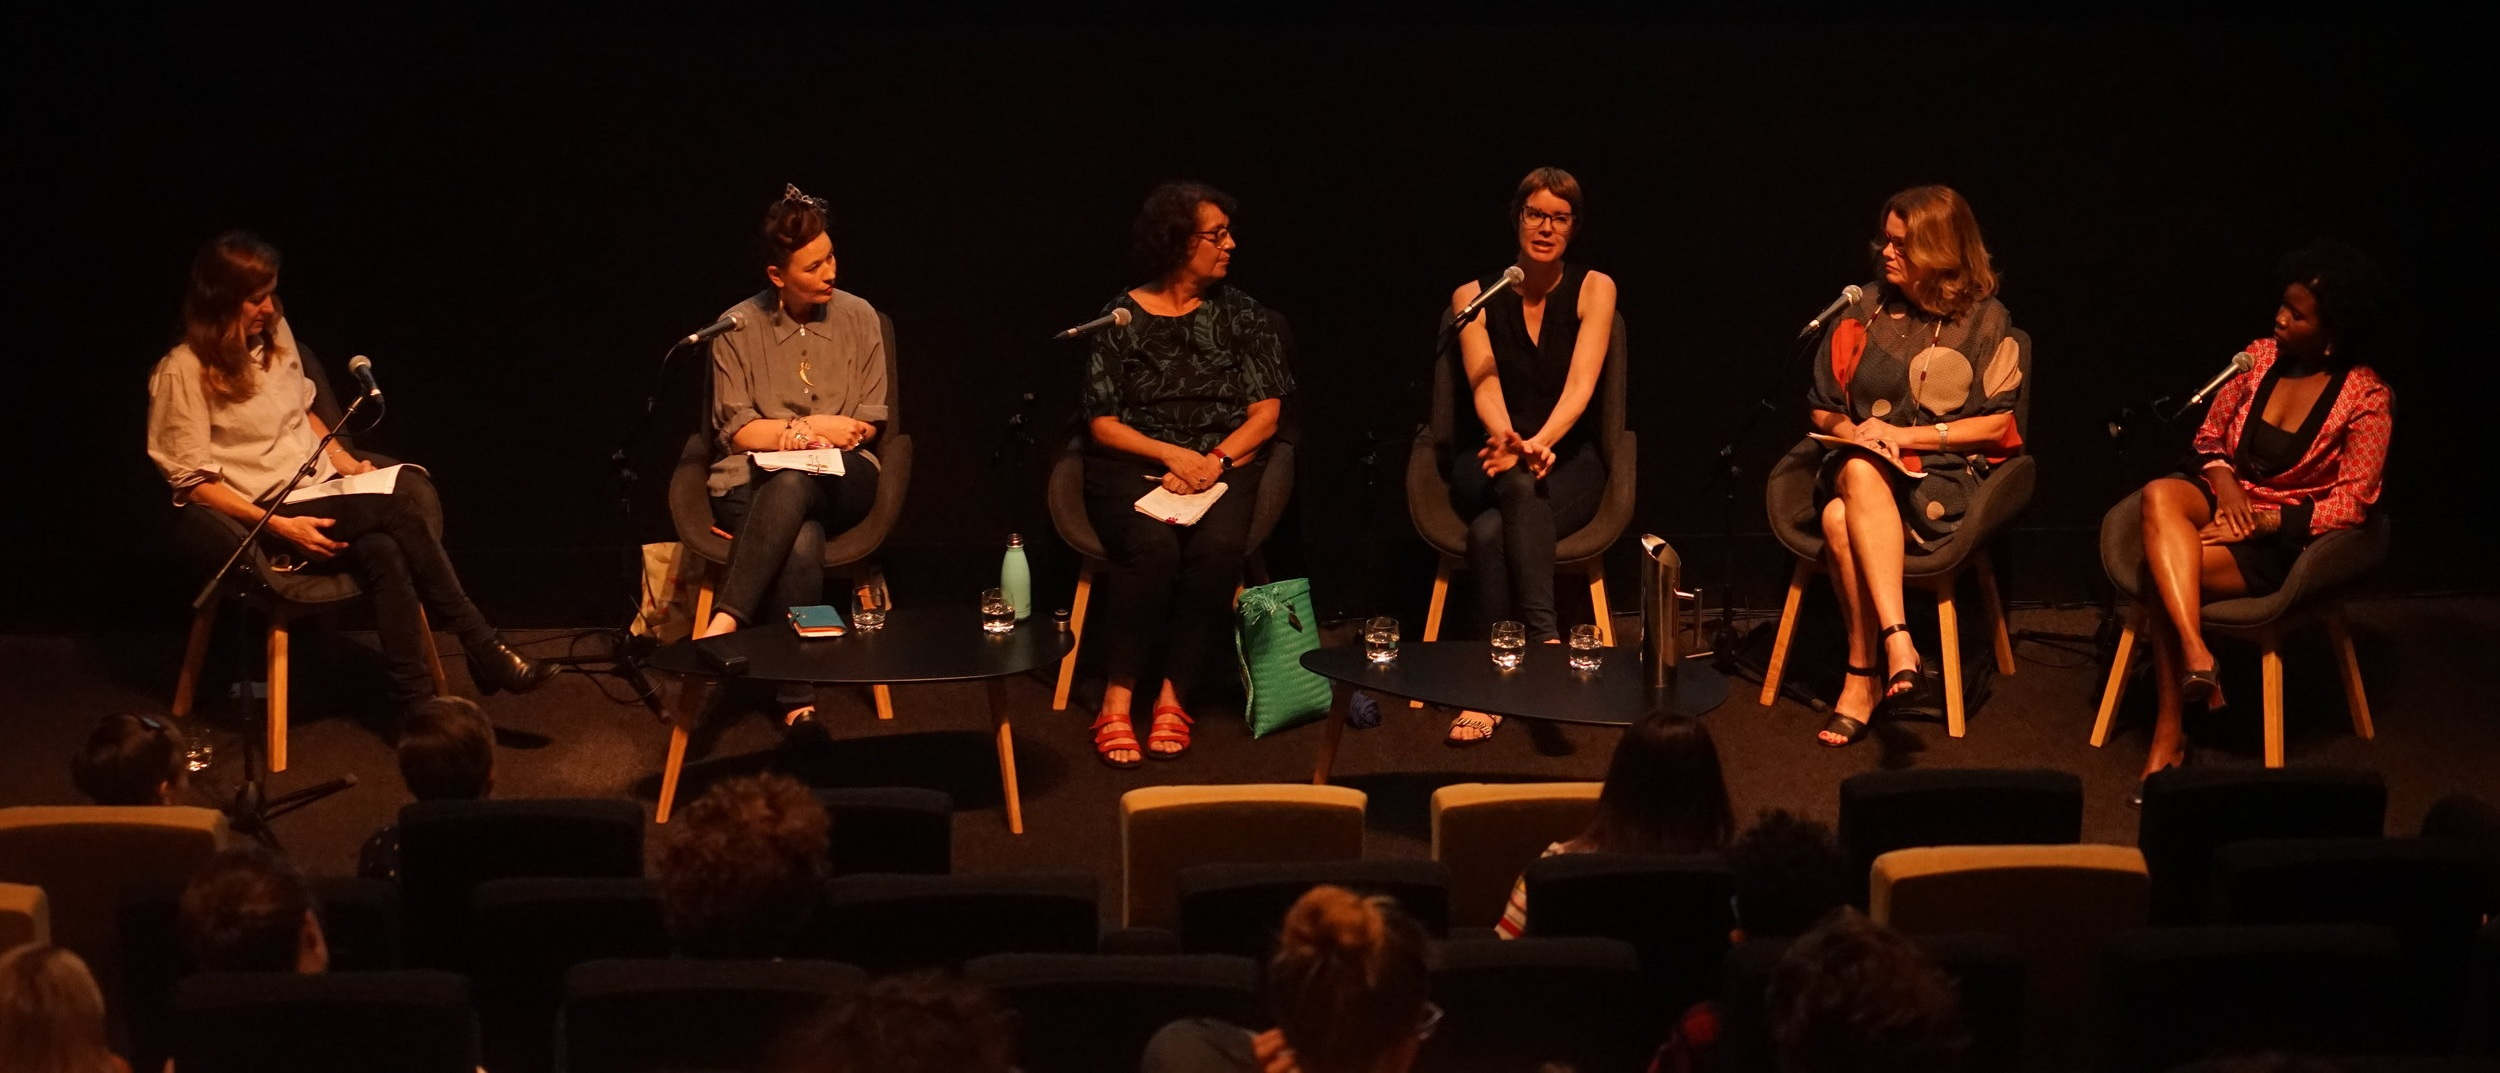 Leading the Way: Empowering Women's Leadership in the Screen Industries - Public Forum